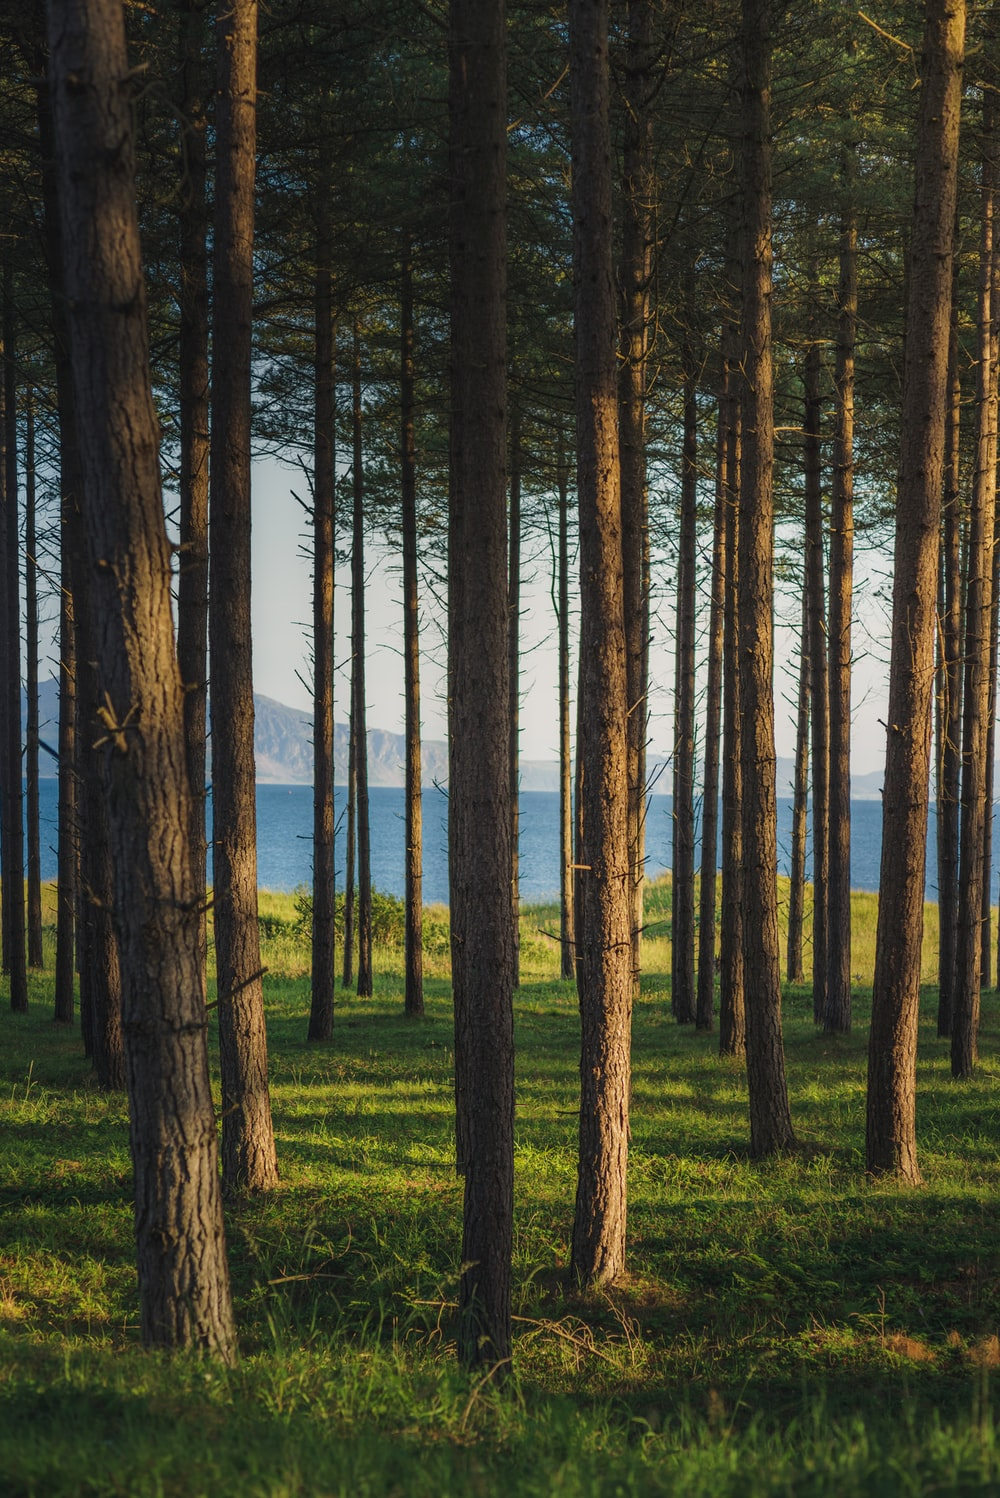 brown trees on green grass field near body of water during daytime